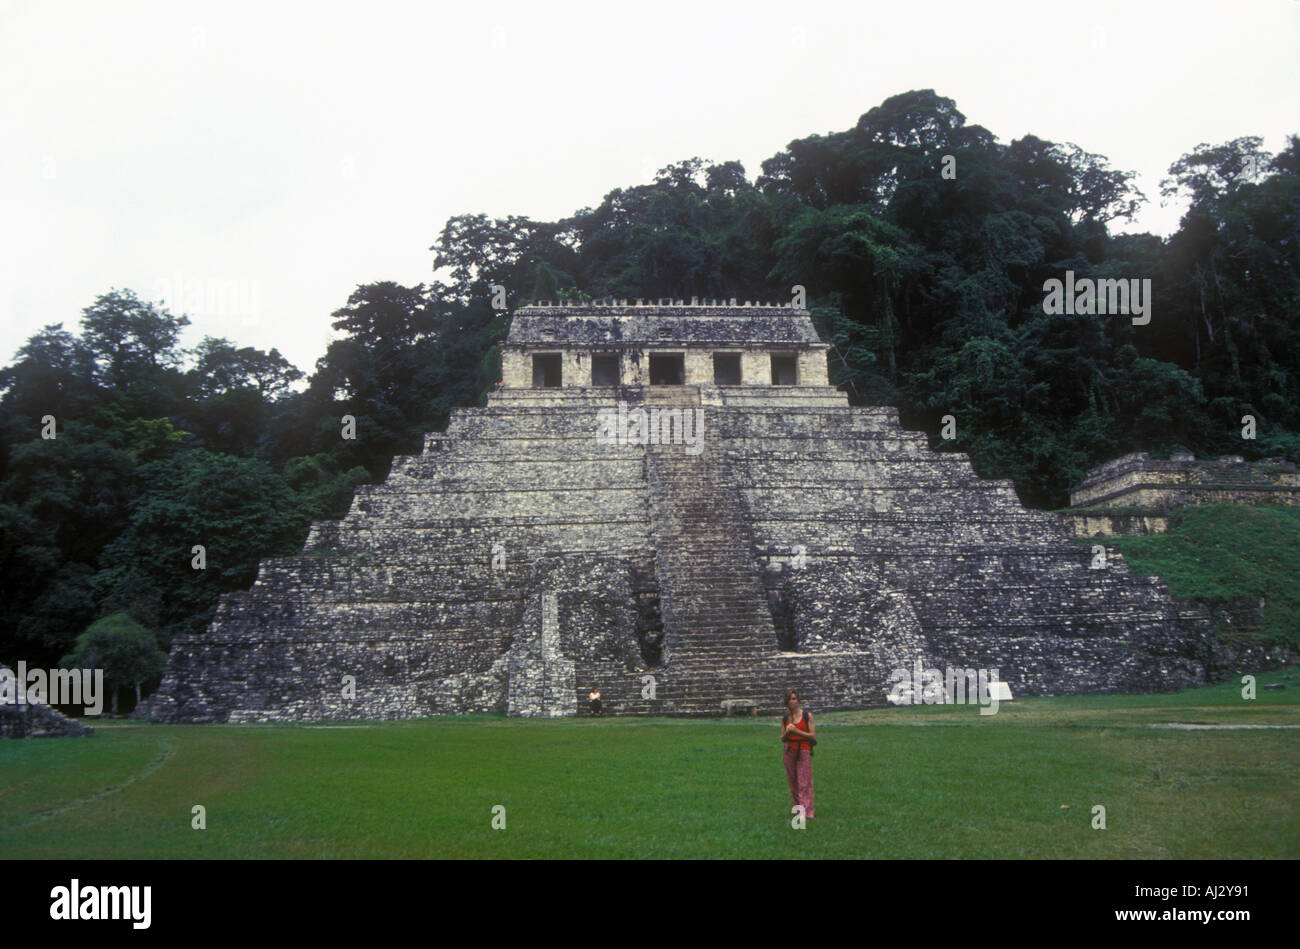 Temple of inscriptions Lord Pacal the Great Built during late classic period around 600 under the rule of Lady K - Stock Image